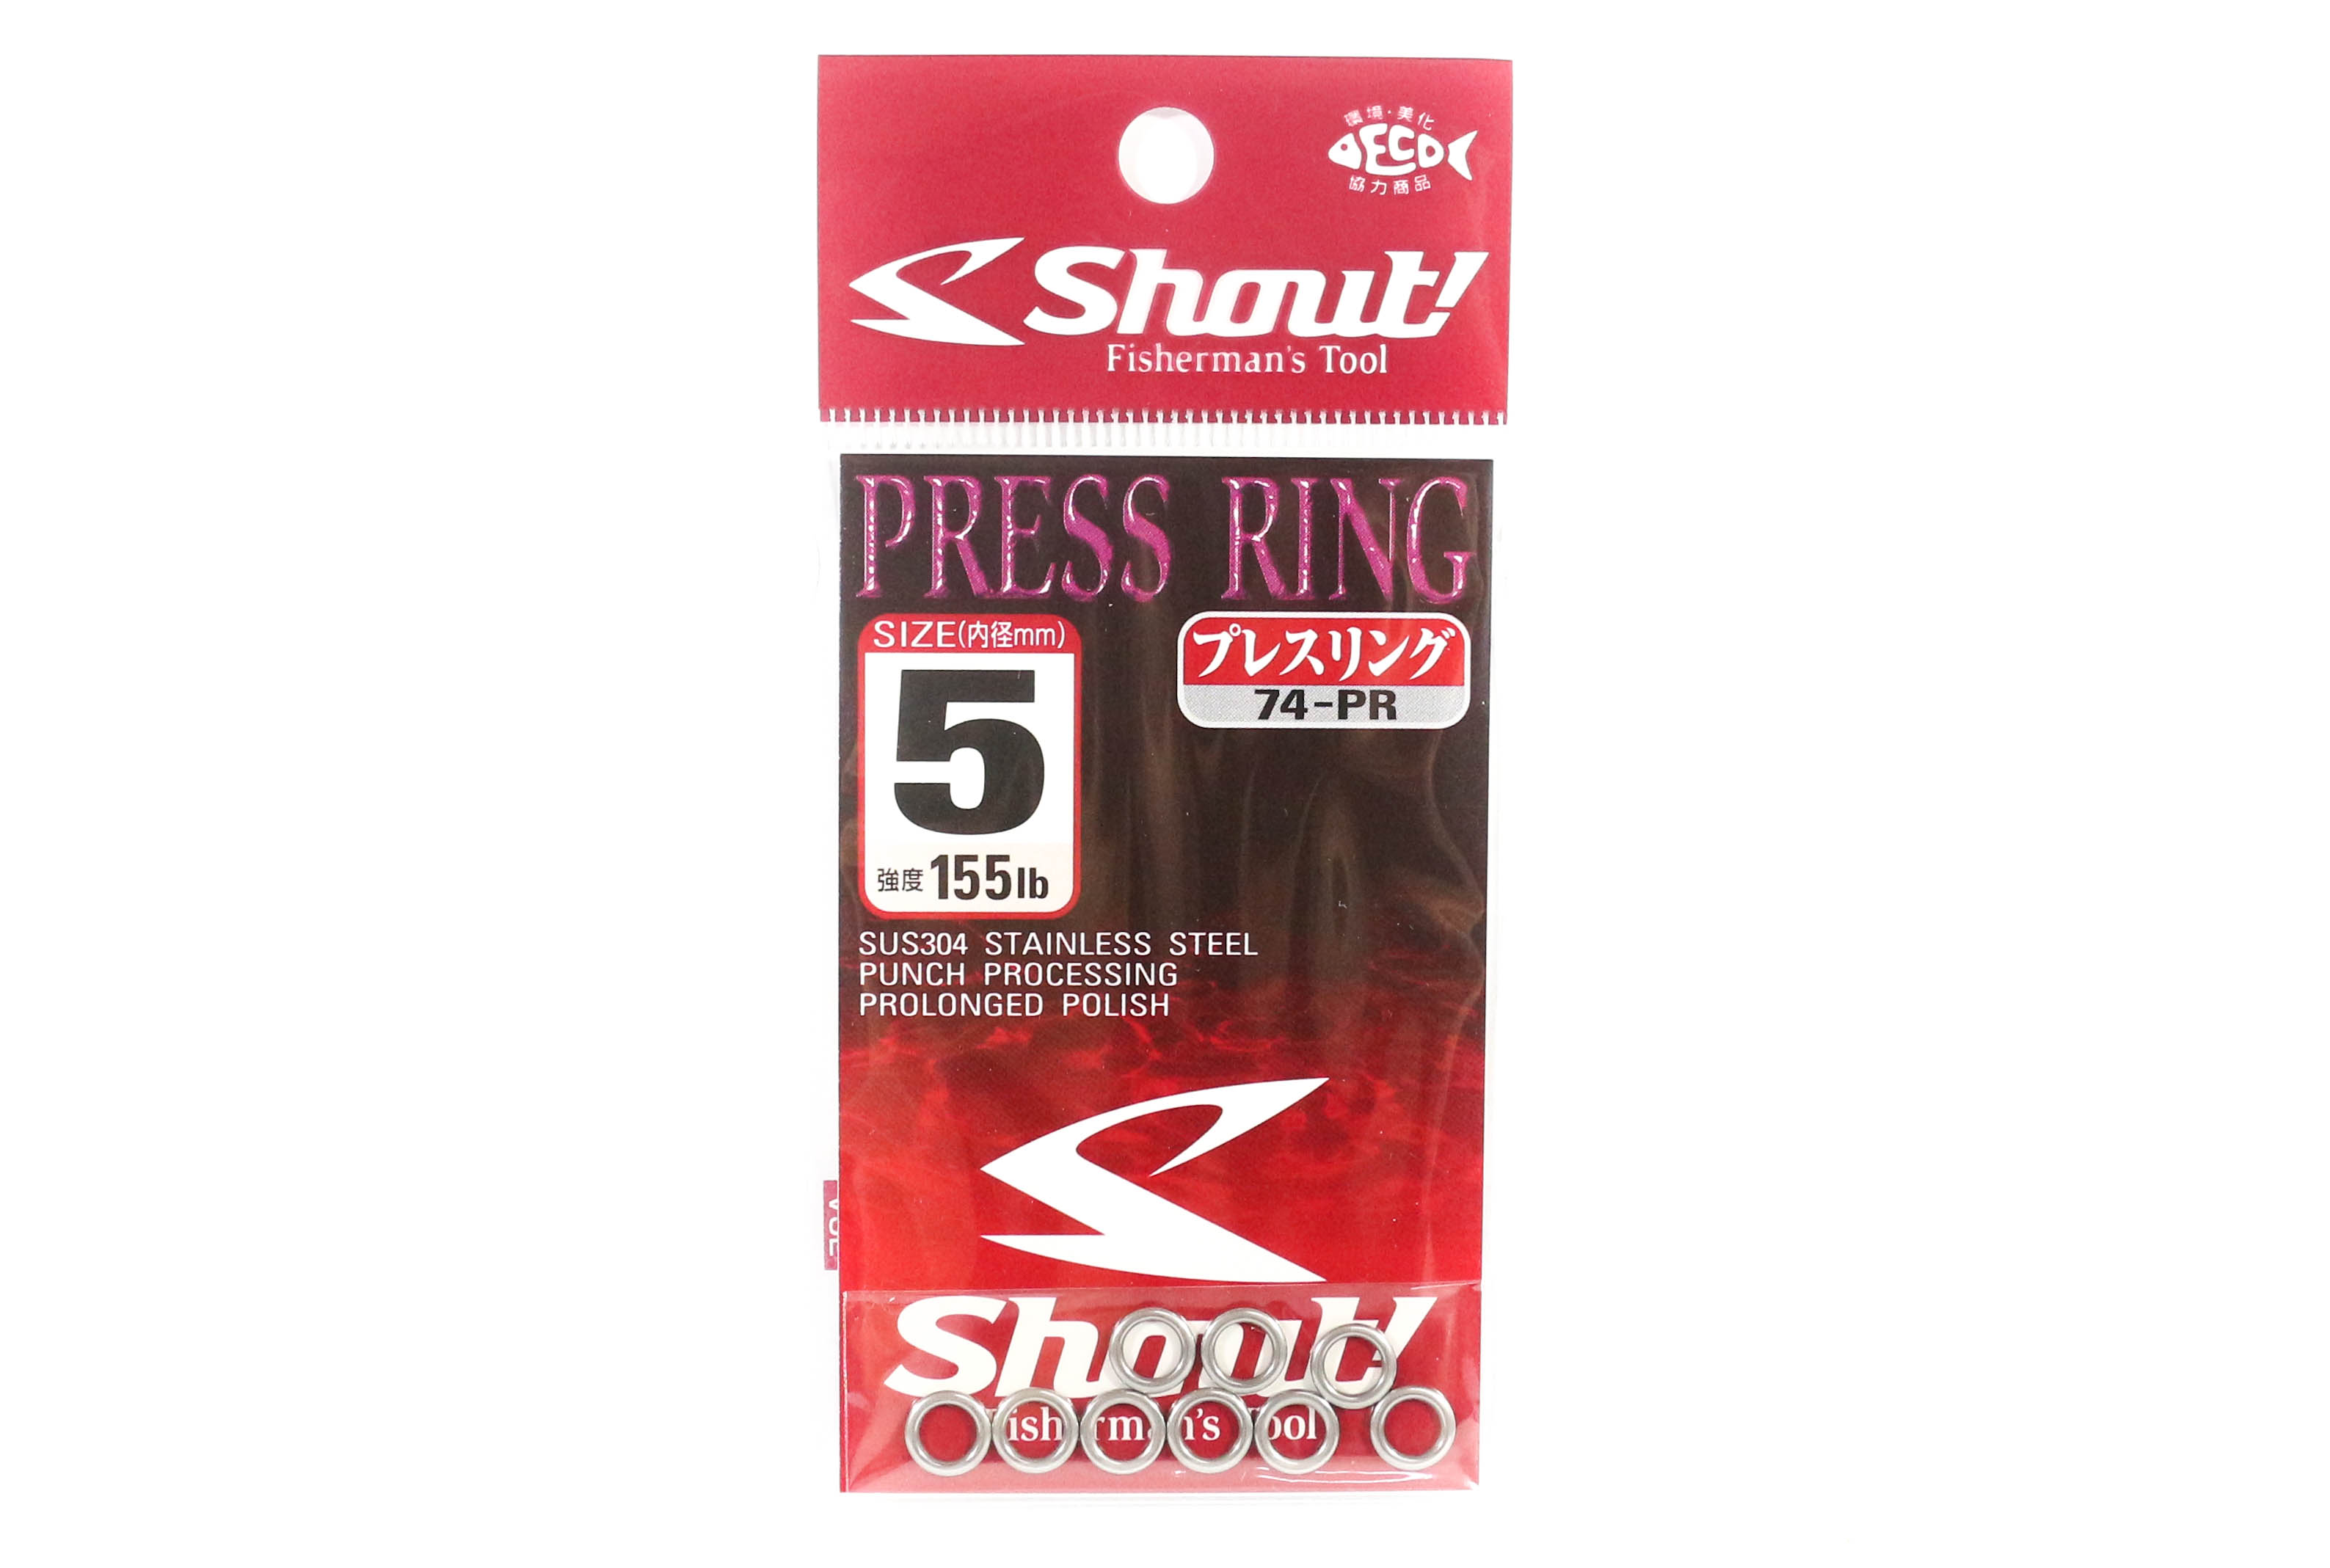 Shout 74-PR Press Ring Standard Solid Ring Size 5 mm (5378)